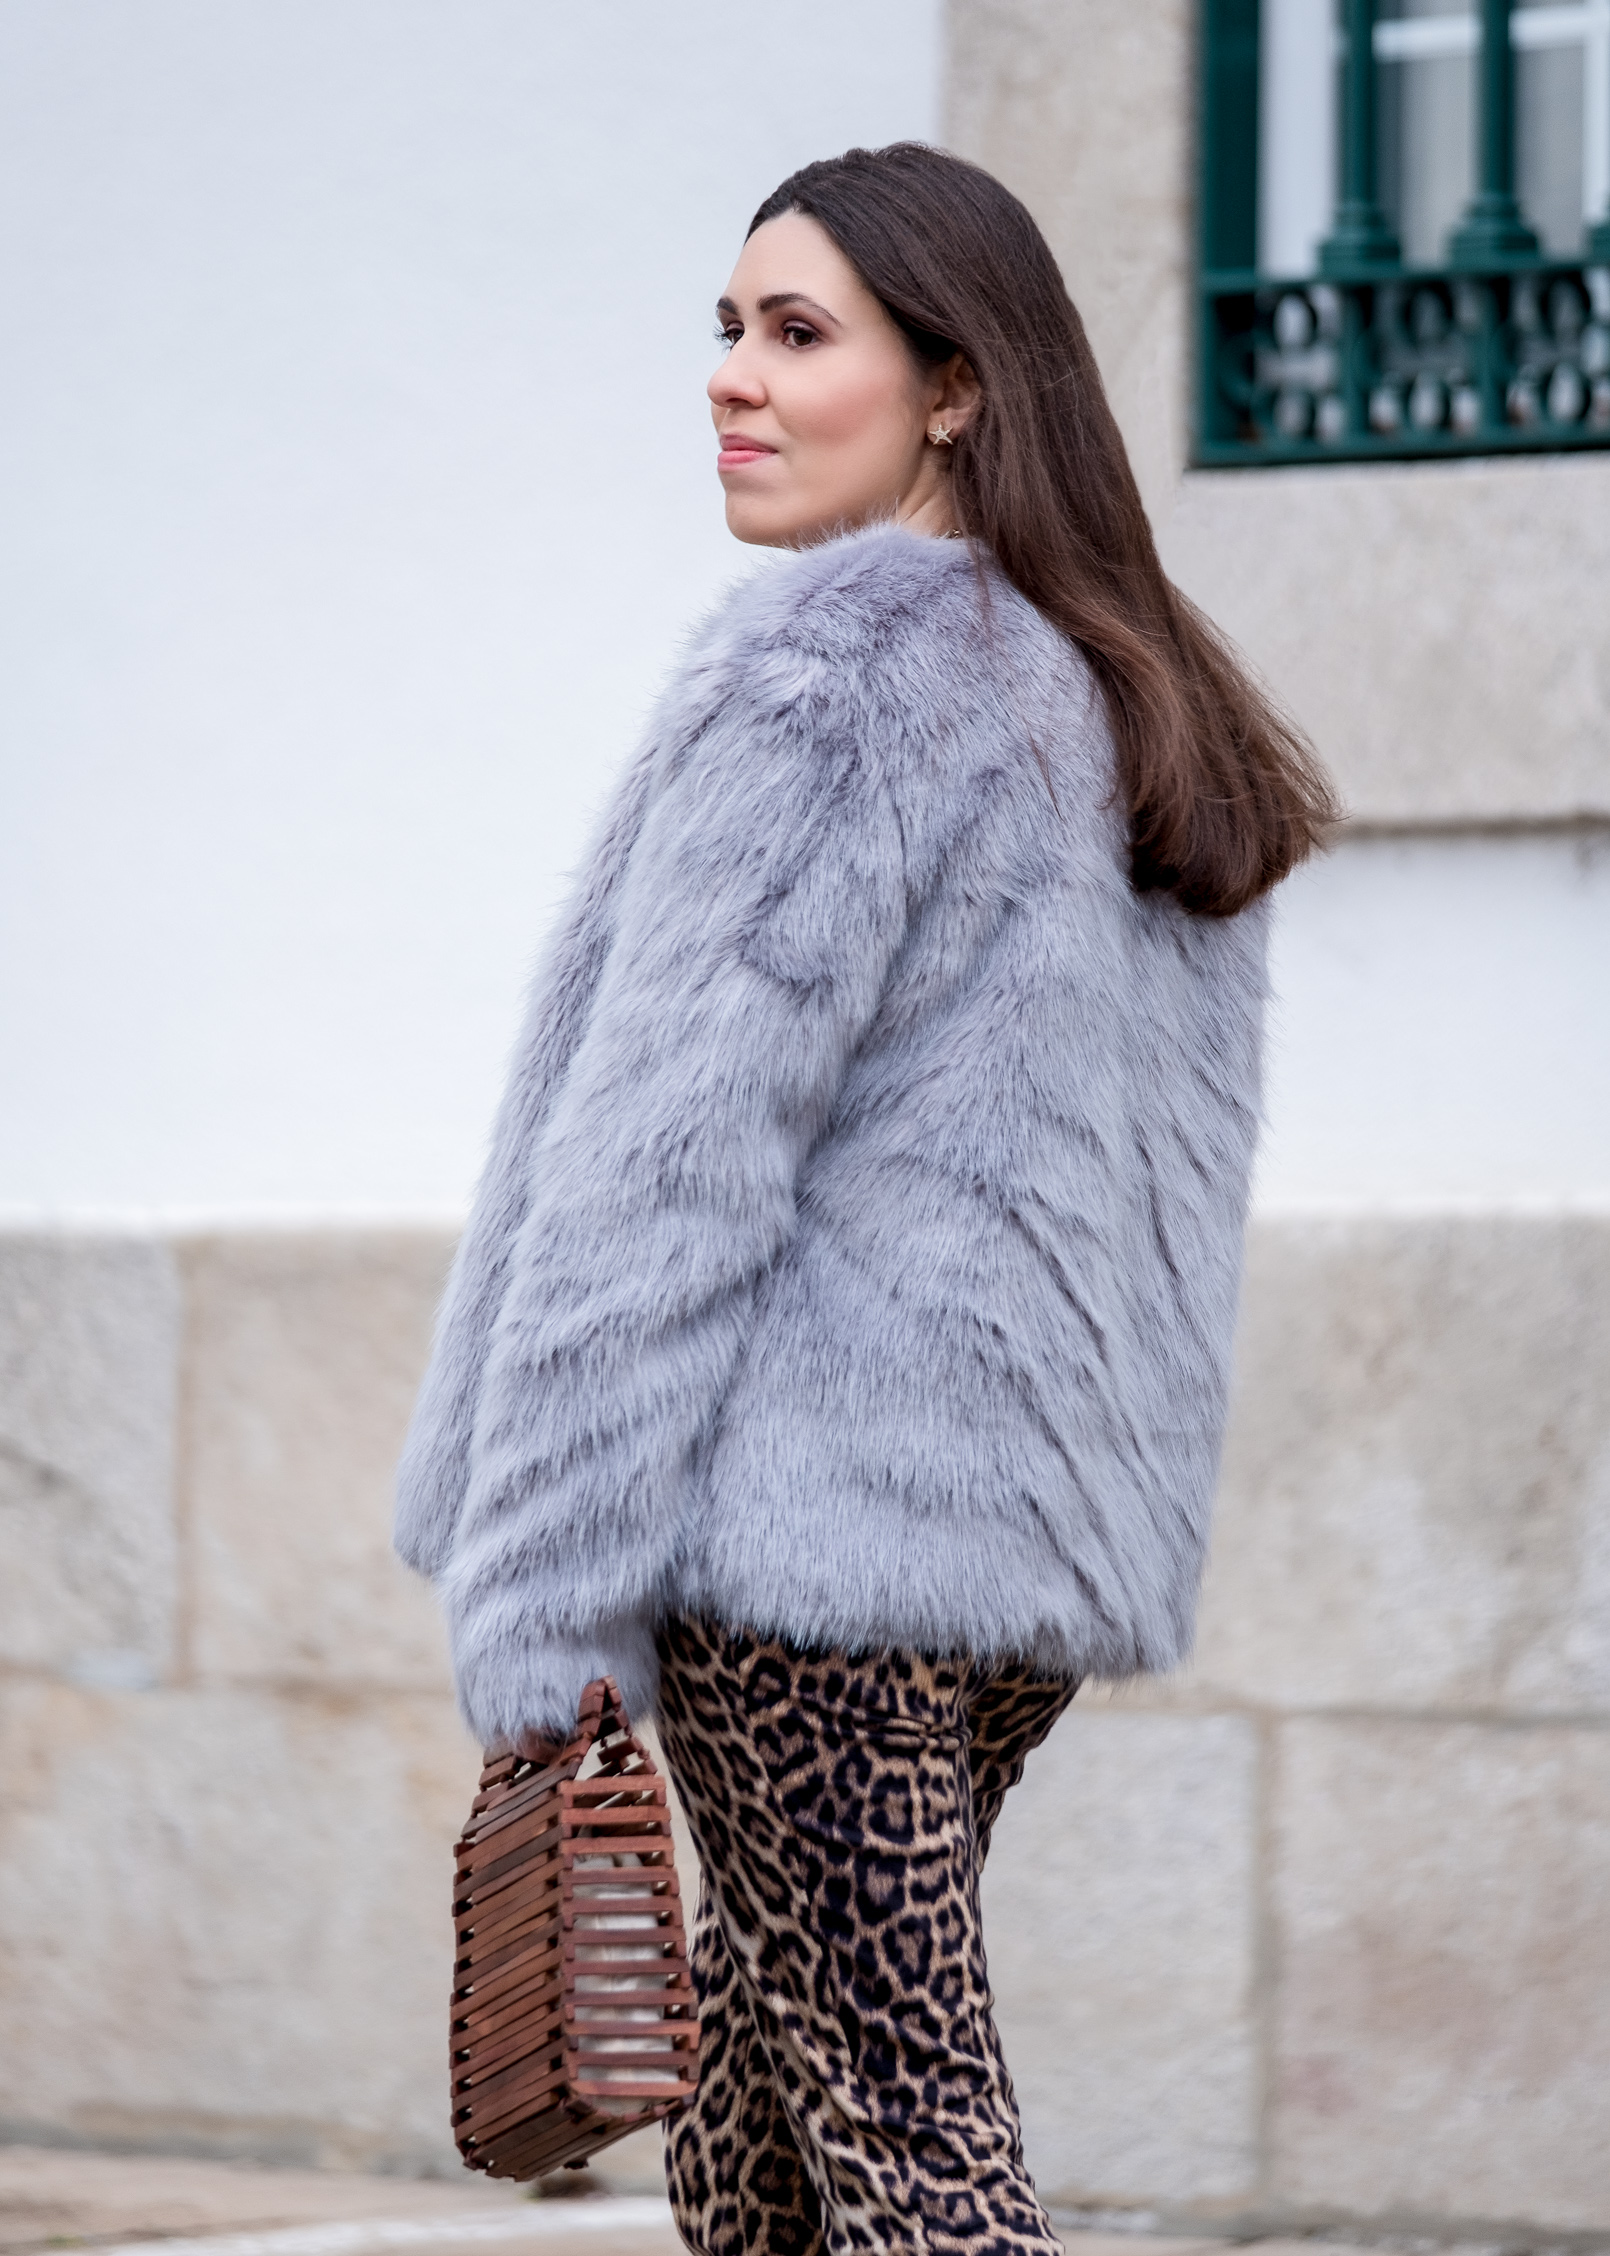 Le Fashionaire faux fur pale blue bershka coat leopard print zara trousers wood hand made zara bag 1189 EN faux fur pale blue bershka coat leopard print zara trousers wood hand made zara bag 1189 EN